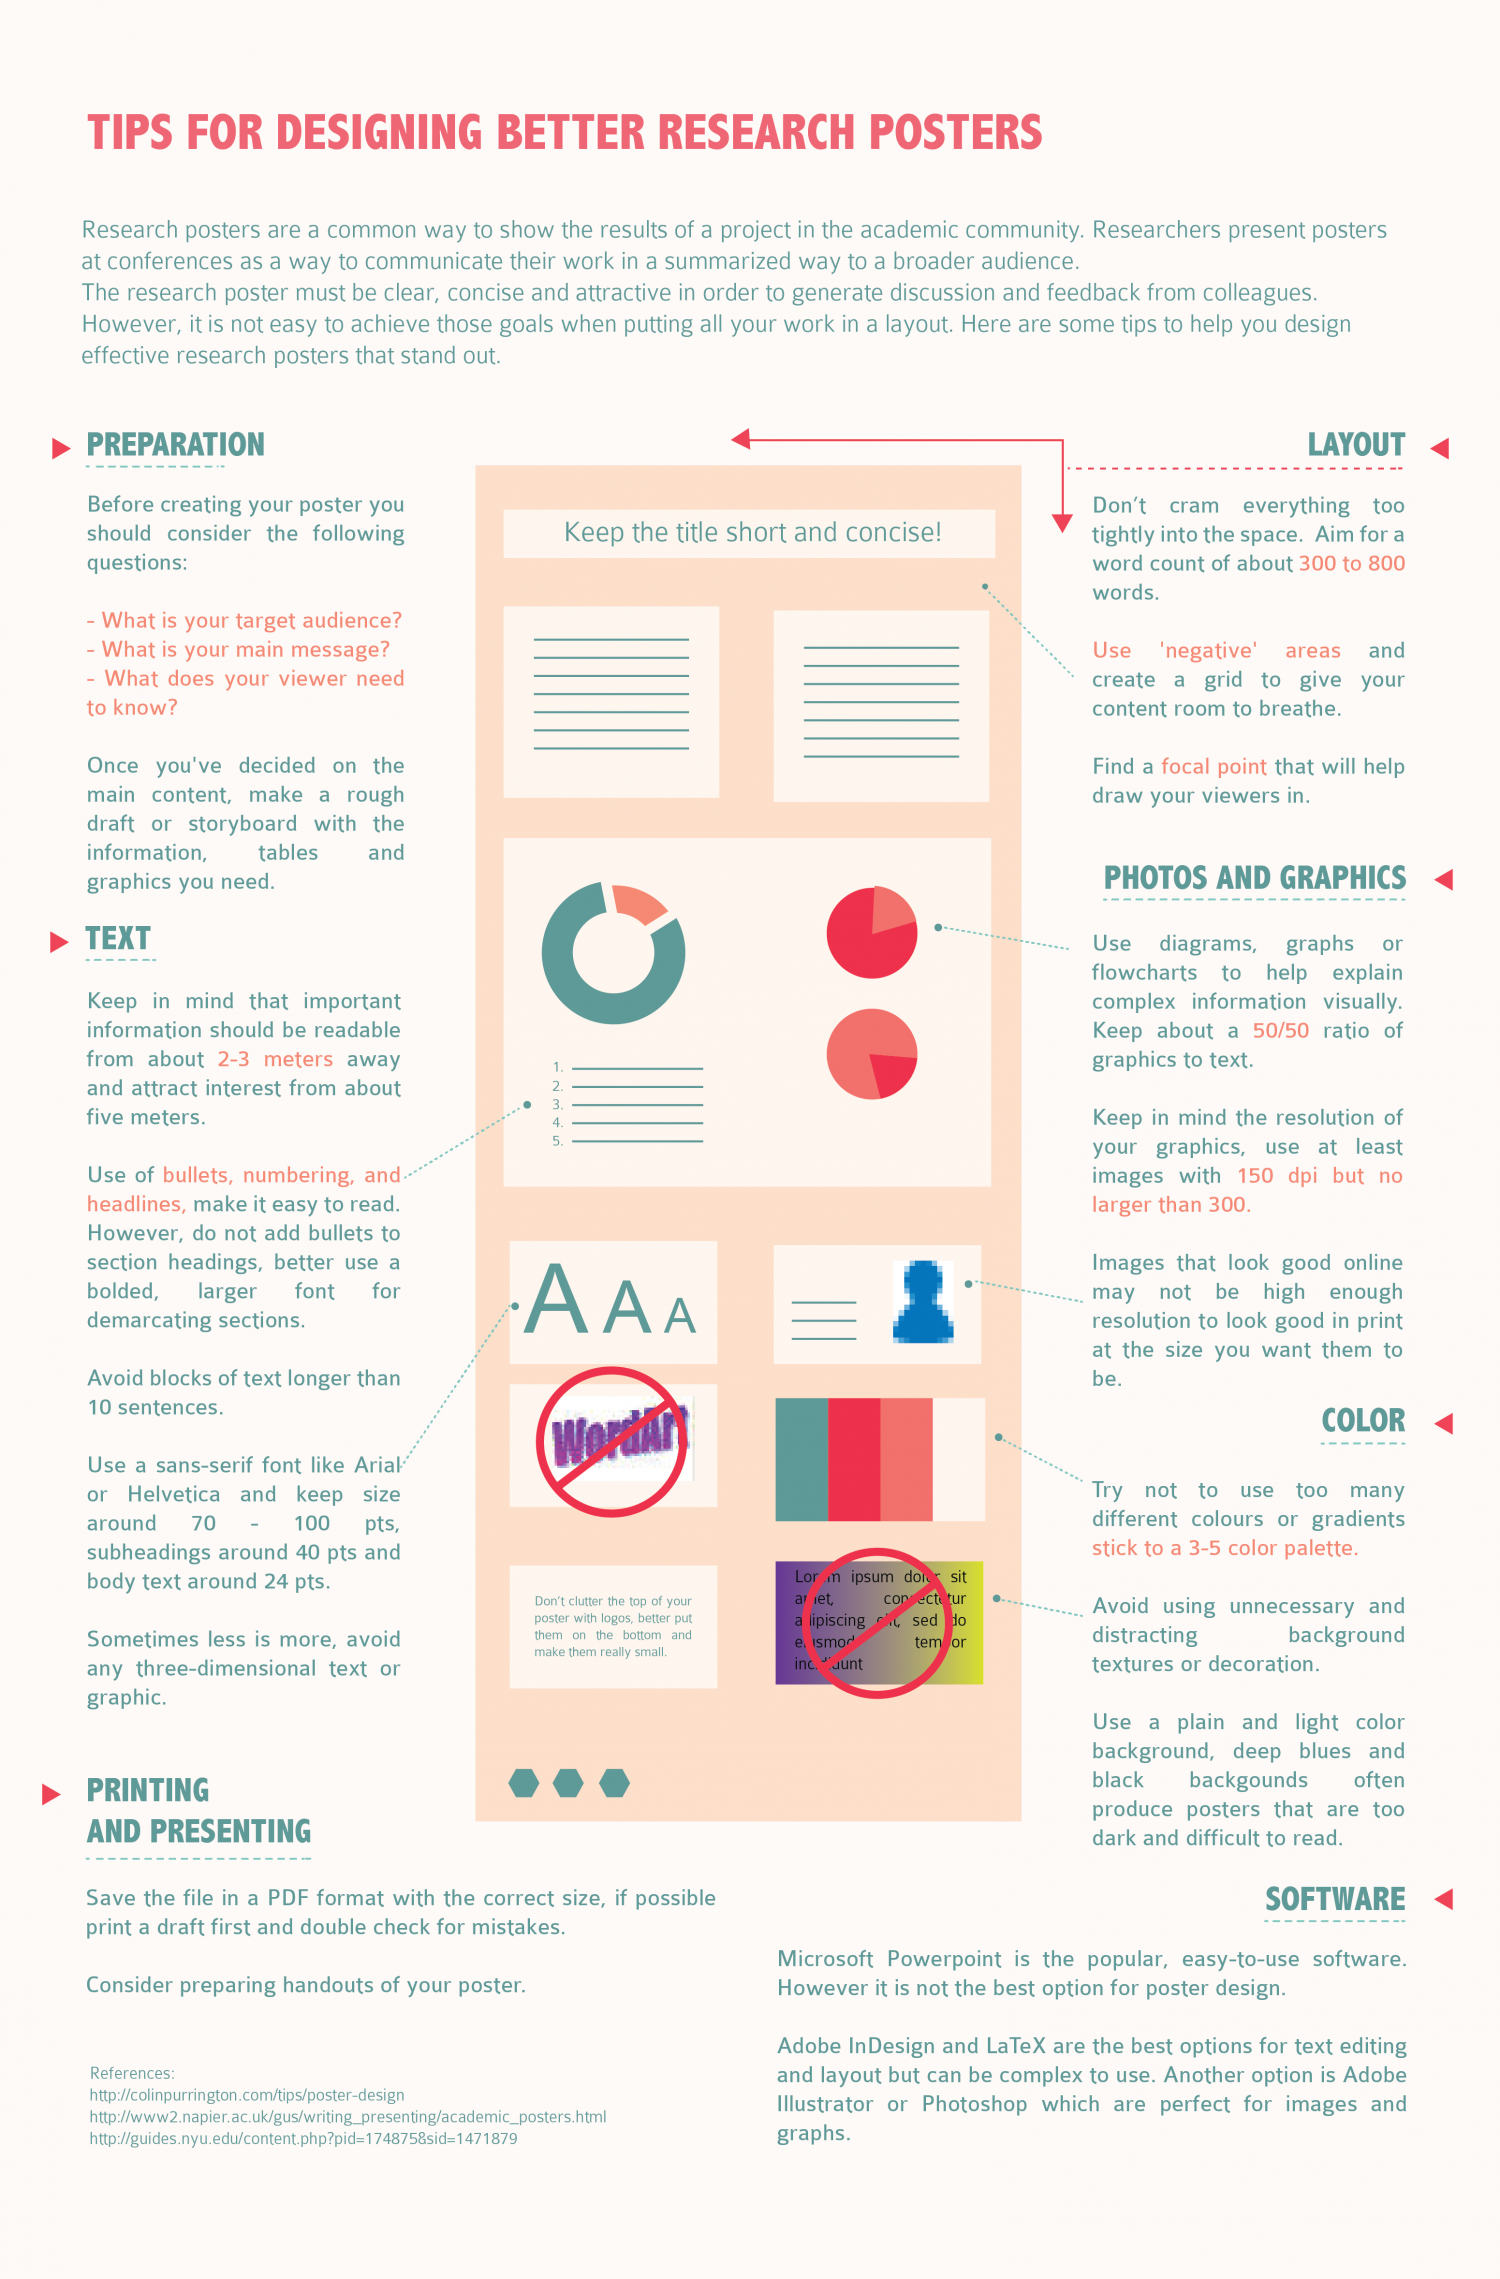 How to Design Better Research Posters Infographic